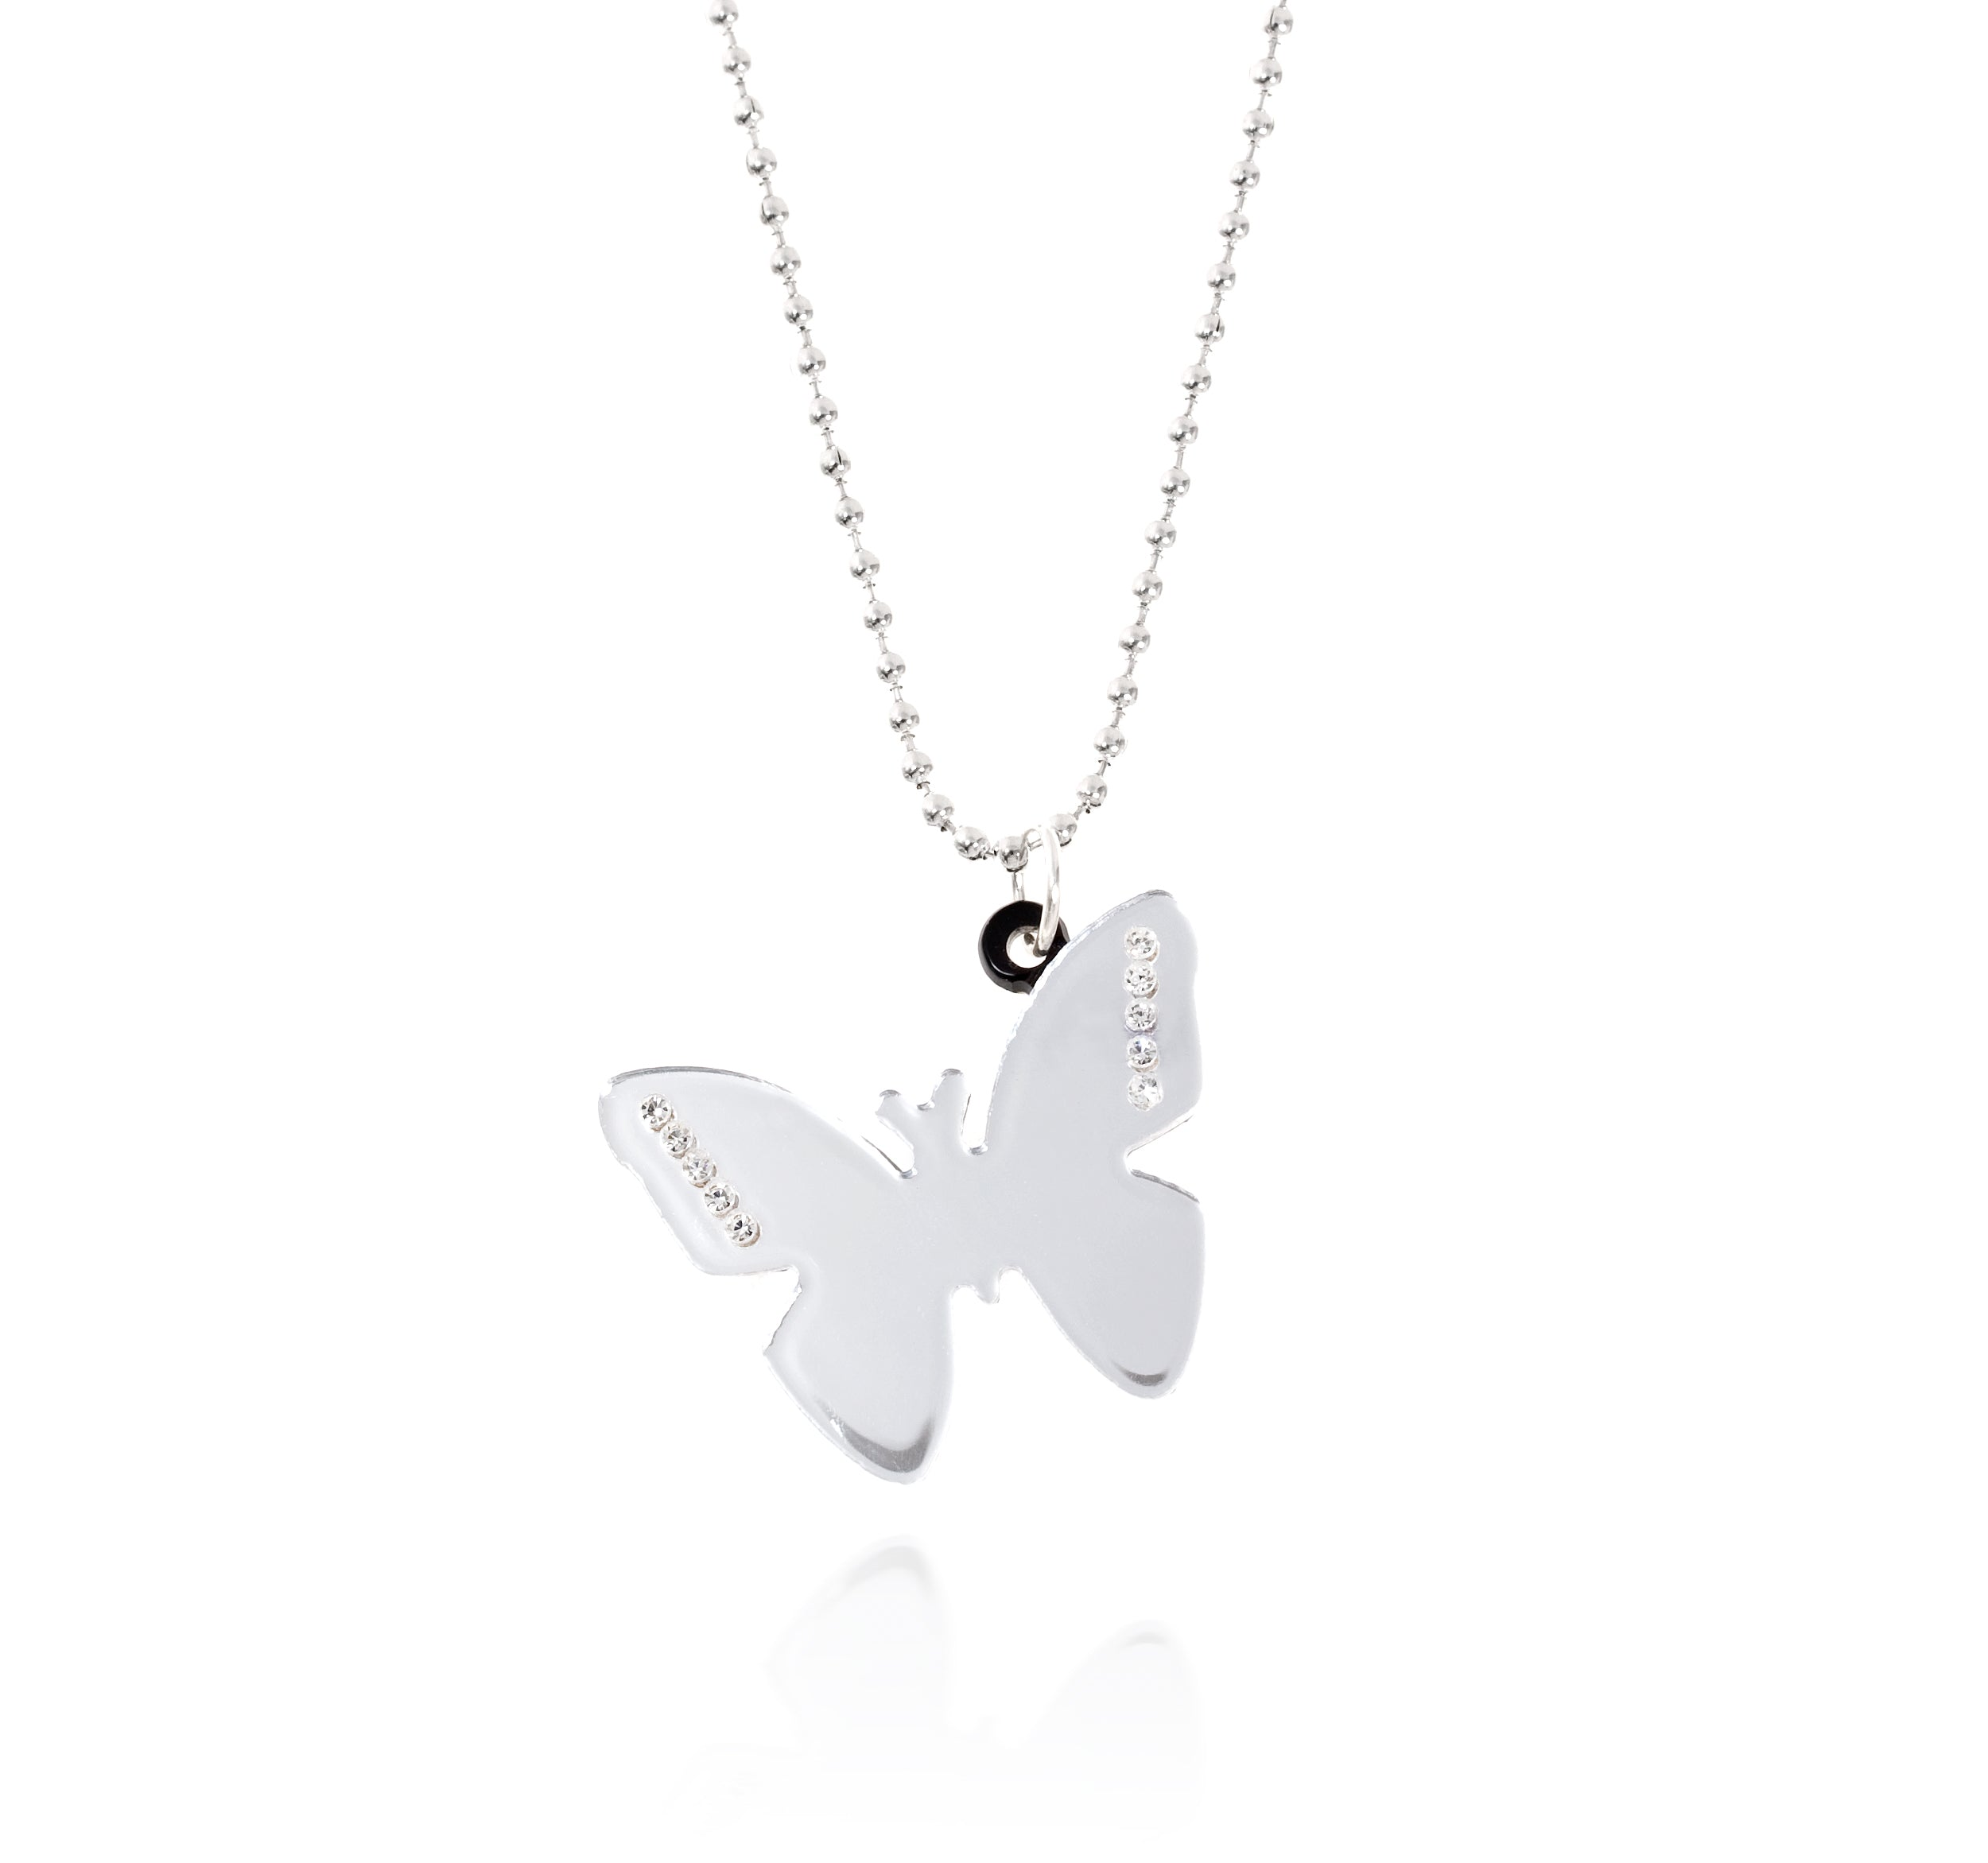 Butterly Charm Necklace